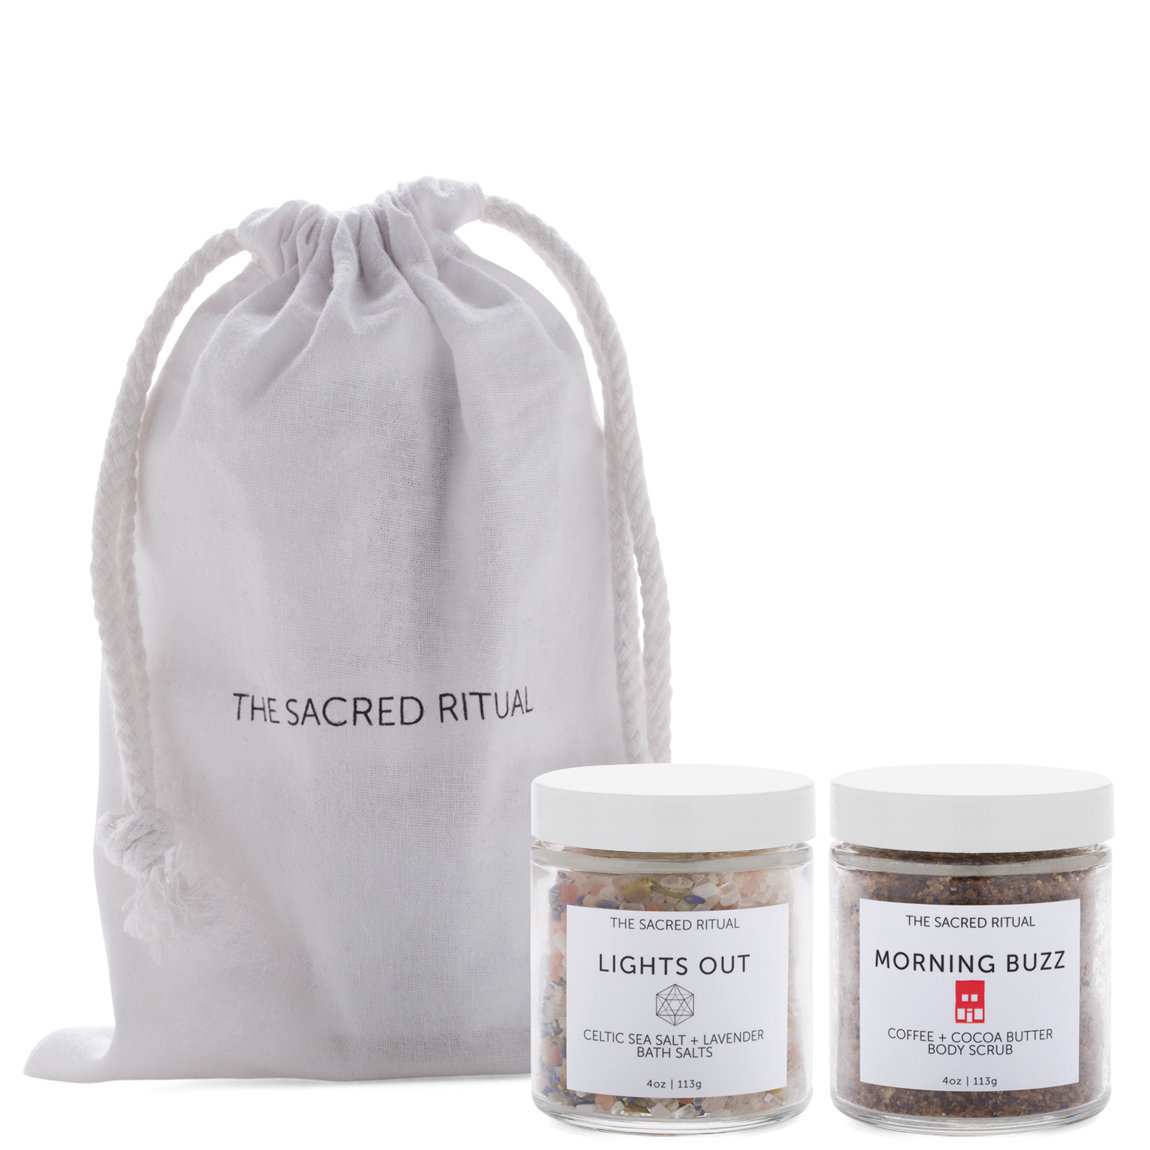 The Sacred Ritual Morning Buzz + Lights Out Scrub & Deluxe Set product smear.